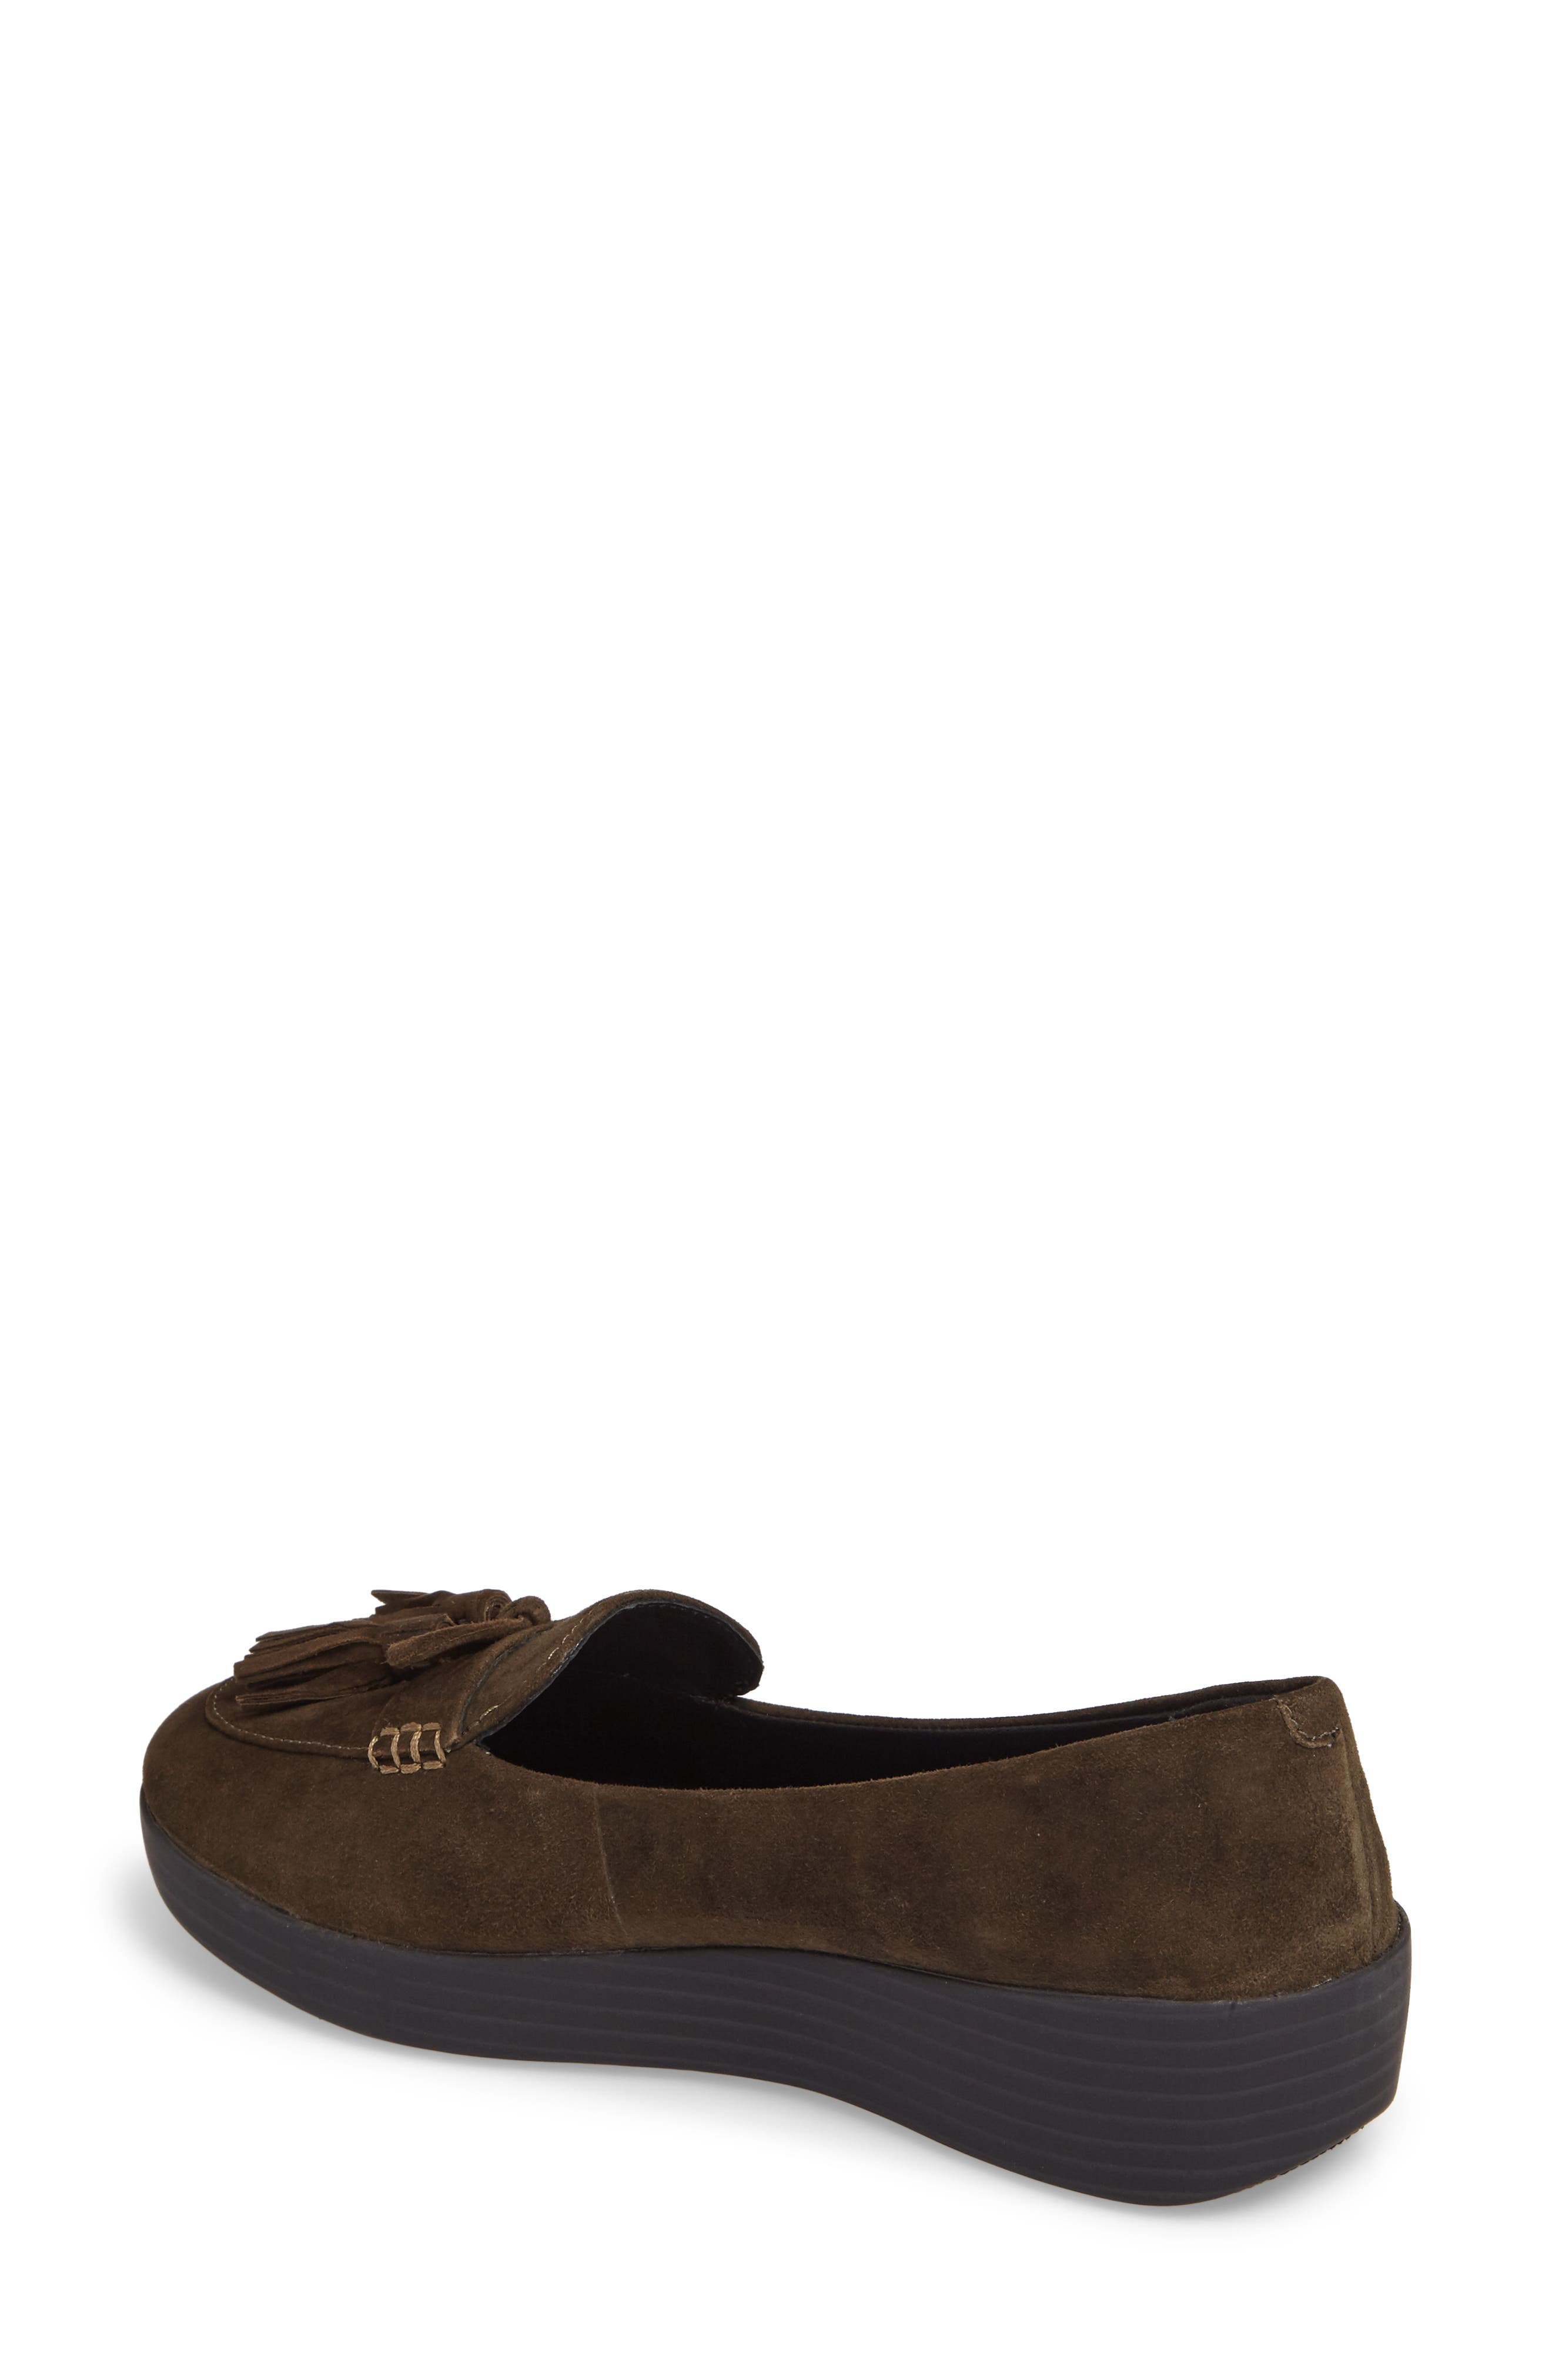 Tassel Bow Sneakerloafer<sup>™</sup> Water Repellent Flat,                             Alternate thumbnail 6, color,